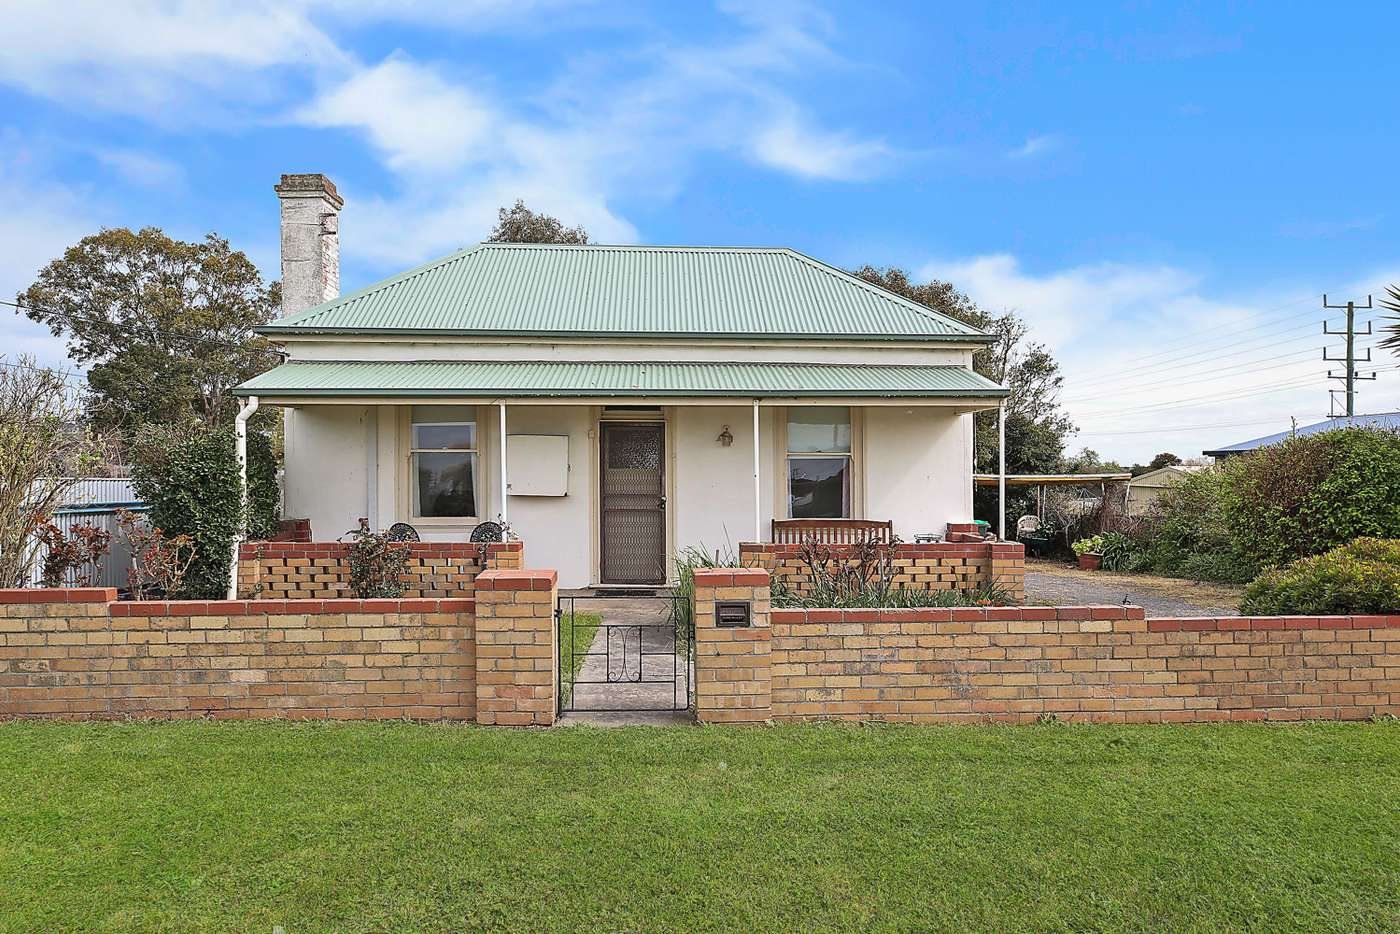 Main view of Homely house listing, 45 Church Street, Camperdown VIC 3260